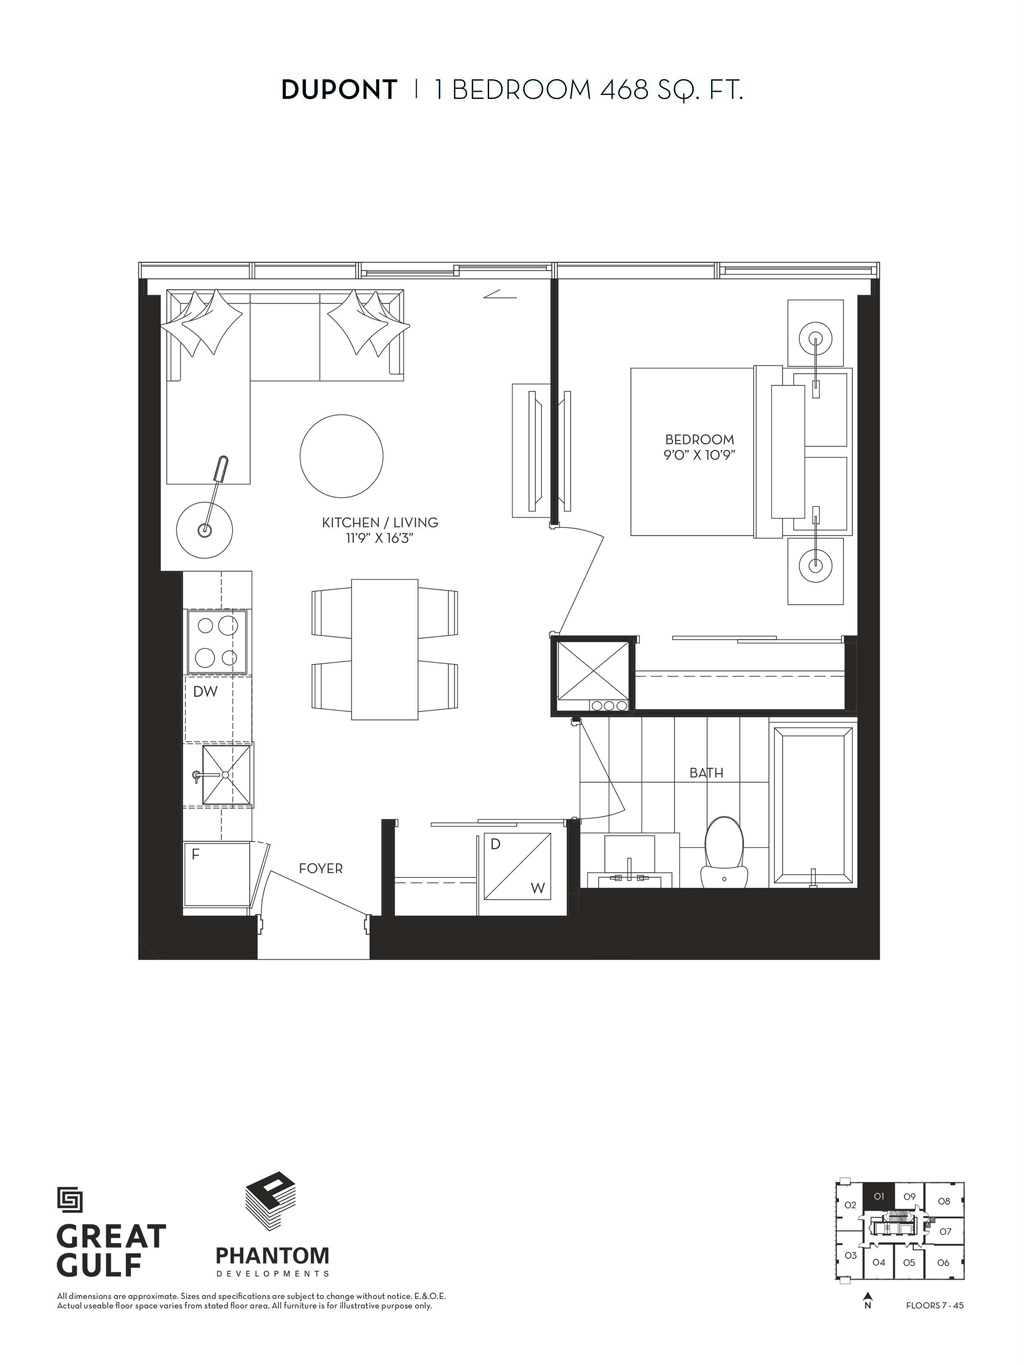 8 CUMBERLAND VIP ACCESS - FLOORPLANS ONE BEDROOM 468 SQ FT